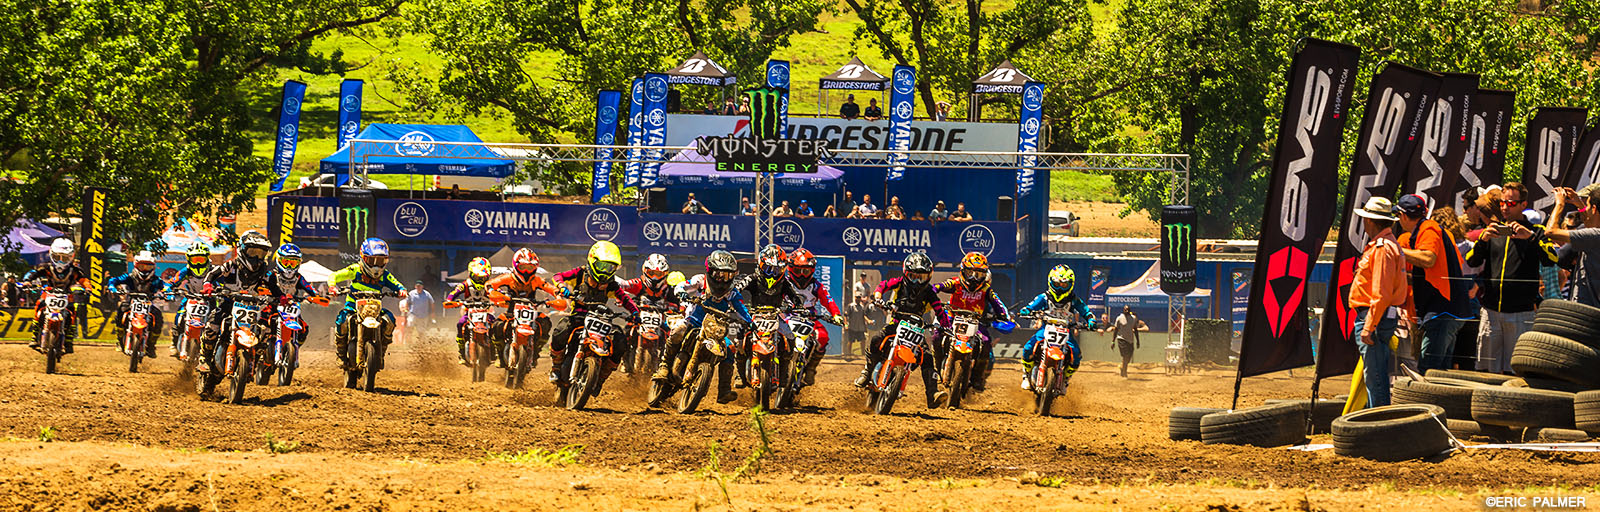 50cc racing at the motocross nationals at Terra Topia